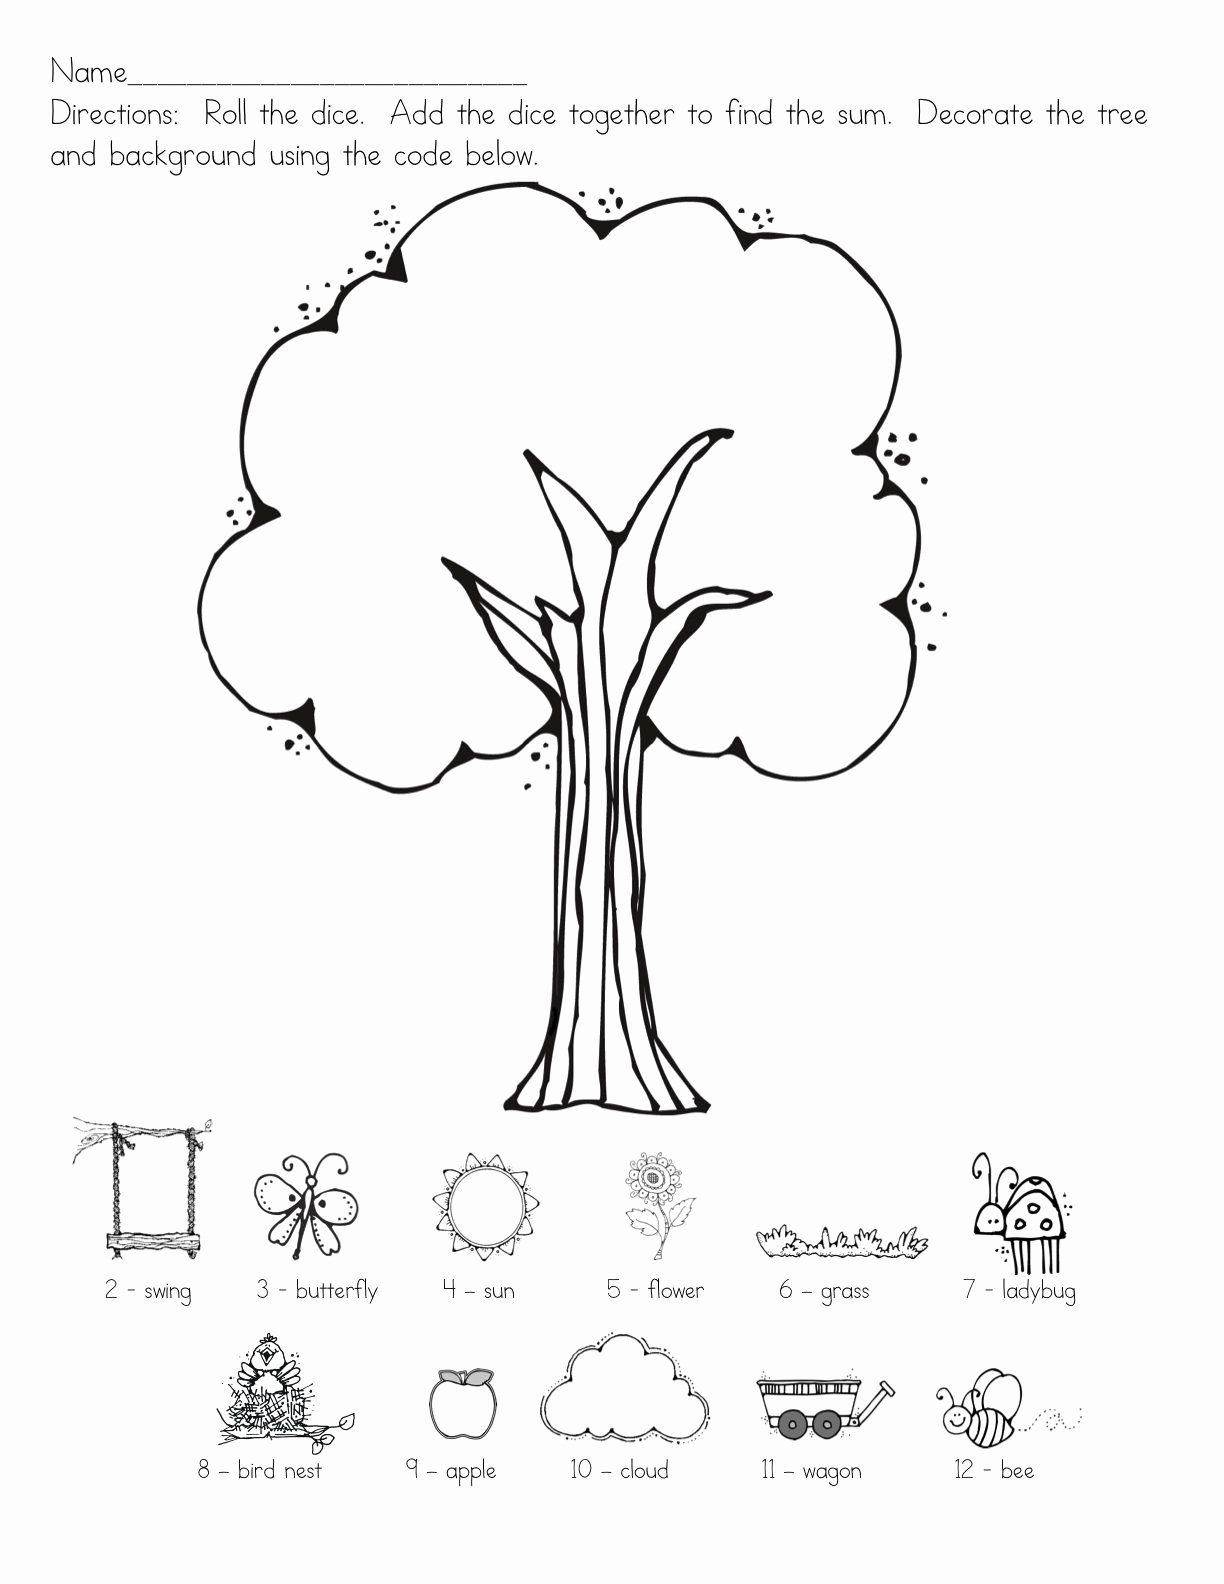 Spatial Concepts Worksheets for Preschoolers Printable Directions Worksheet Preschool Printable Worksheets and